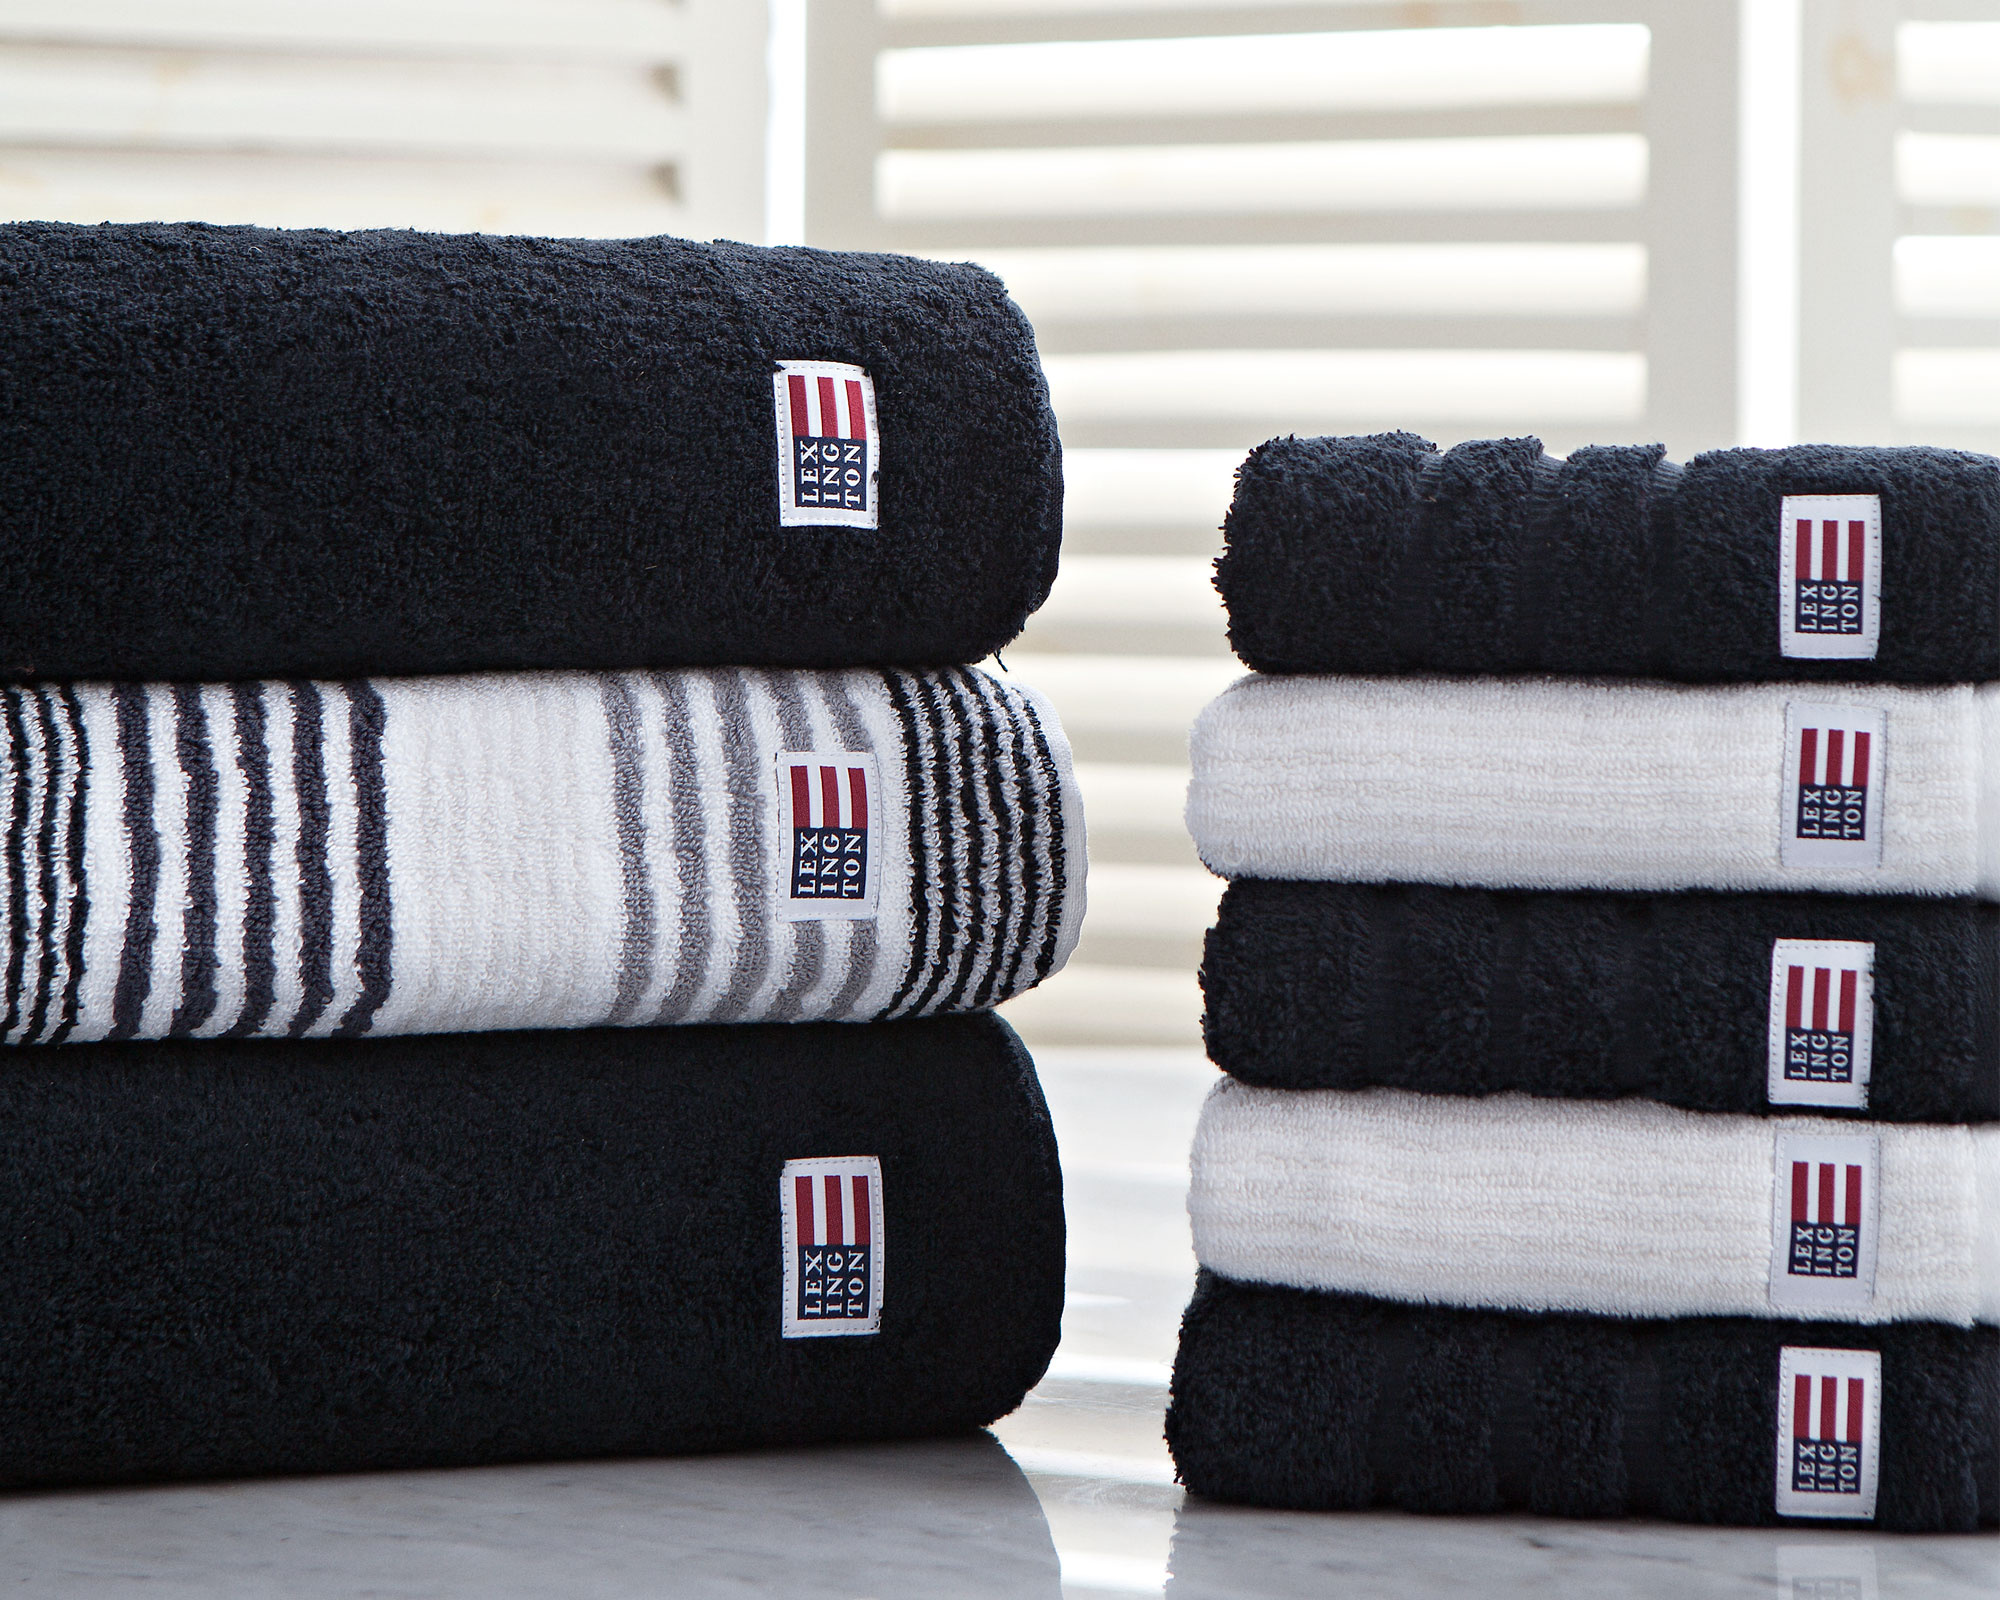 Original Bath Towel Black